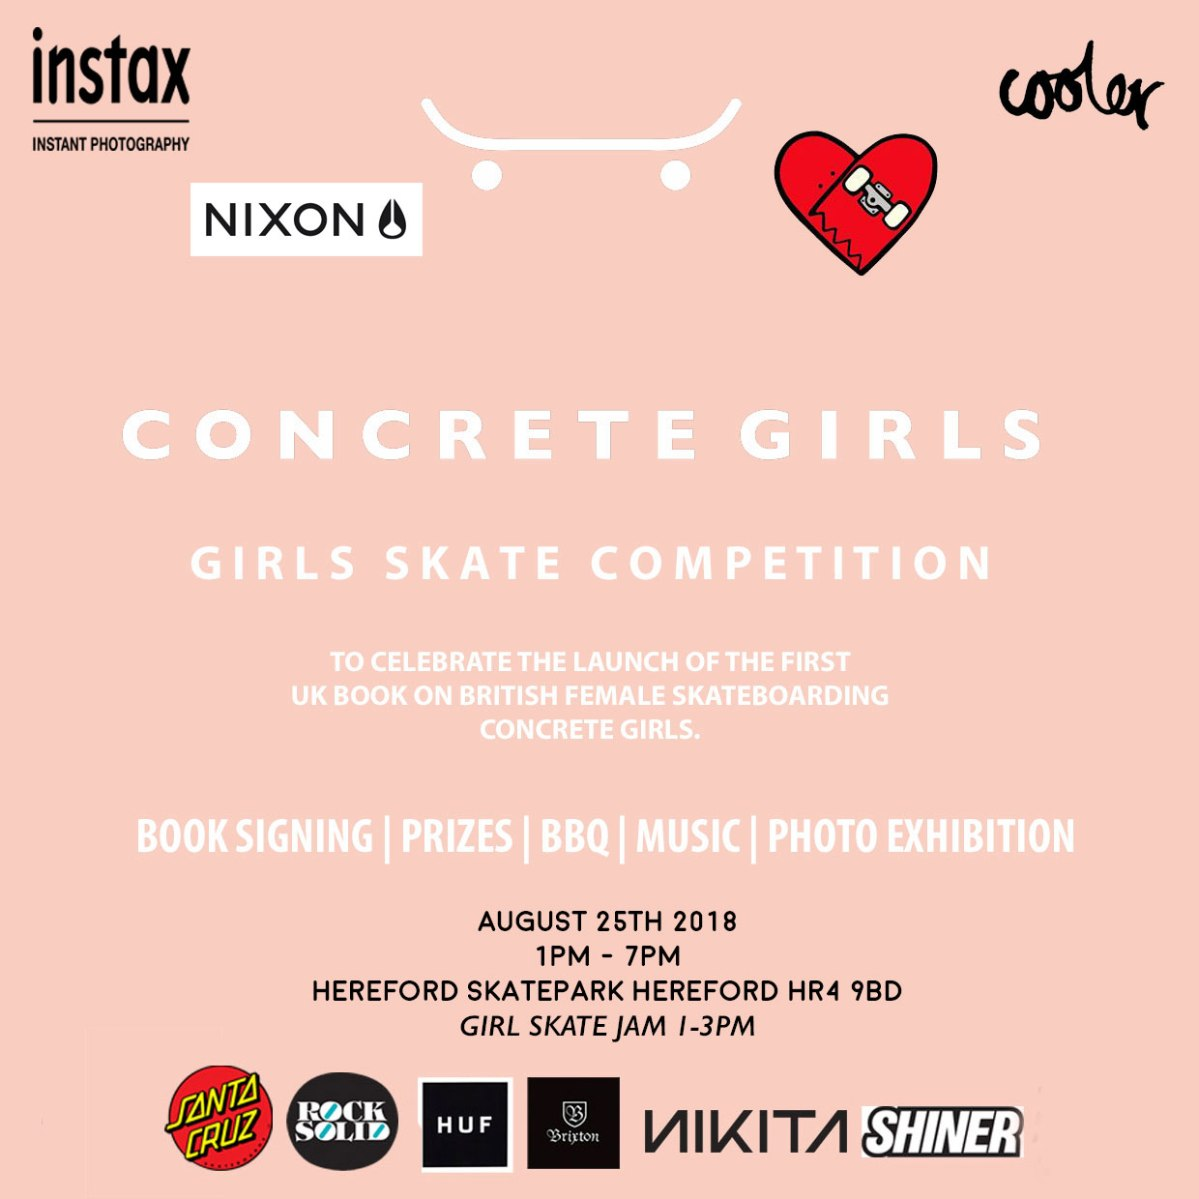 Concrete Girls - Girl Skate Jam Aug 25th 2018 - Hereford Skatepark.